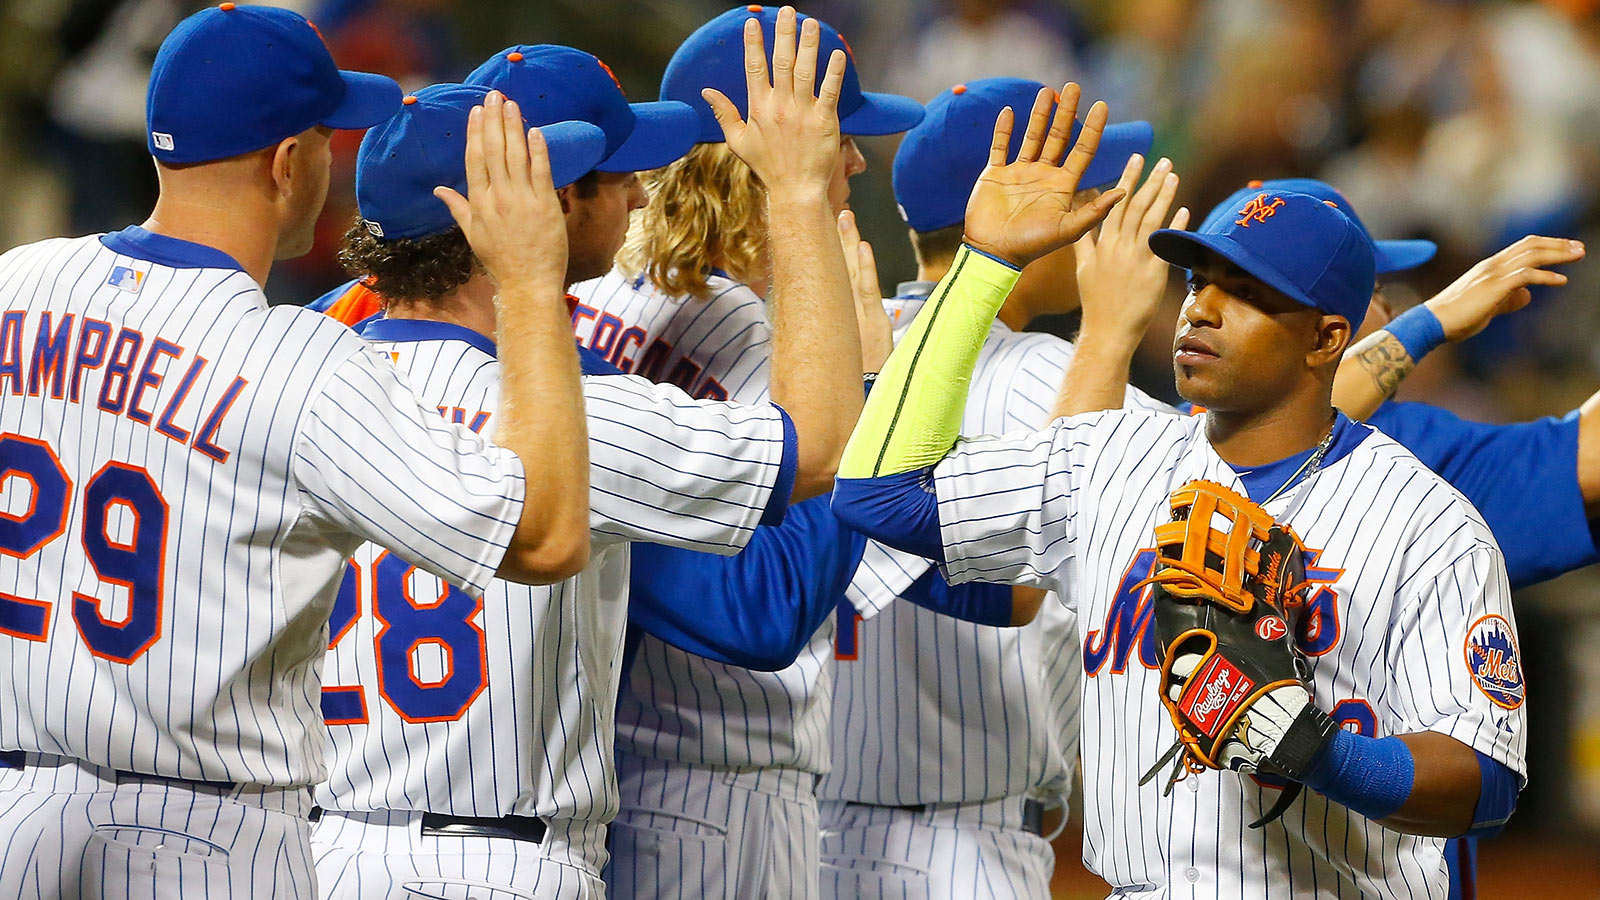 Mets' improbable turnaround more than just Cespedes